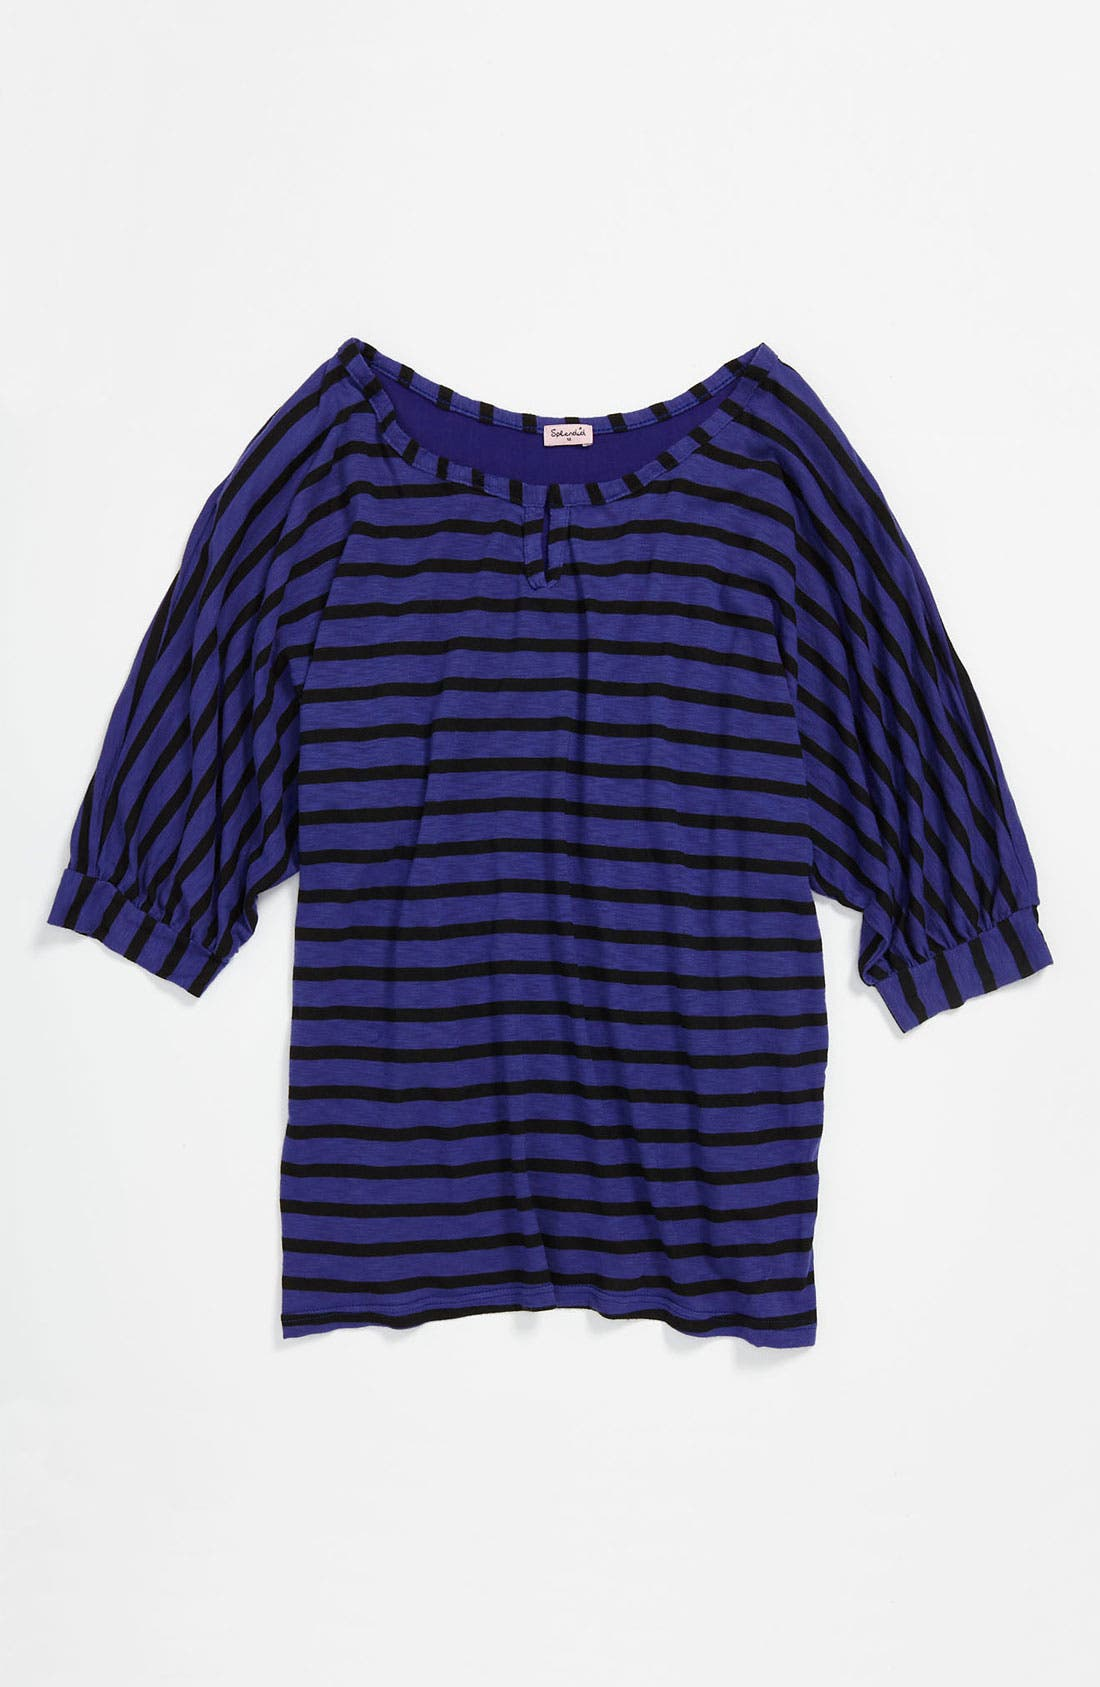 Alternate Image 1 Selected - Splendid 'Venice' Stripe Top (Big Girls)